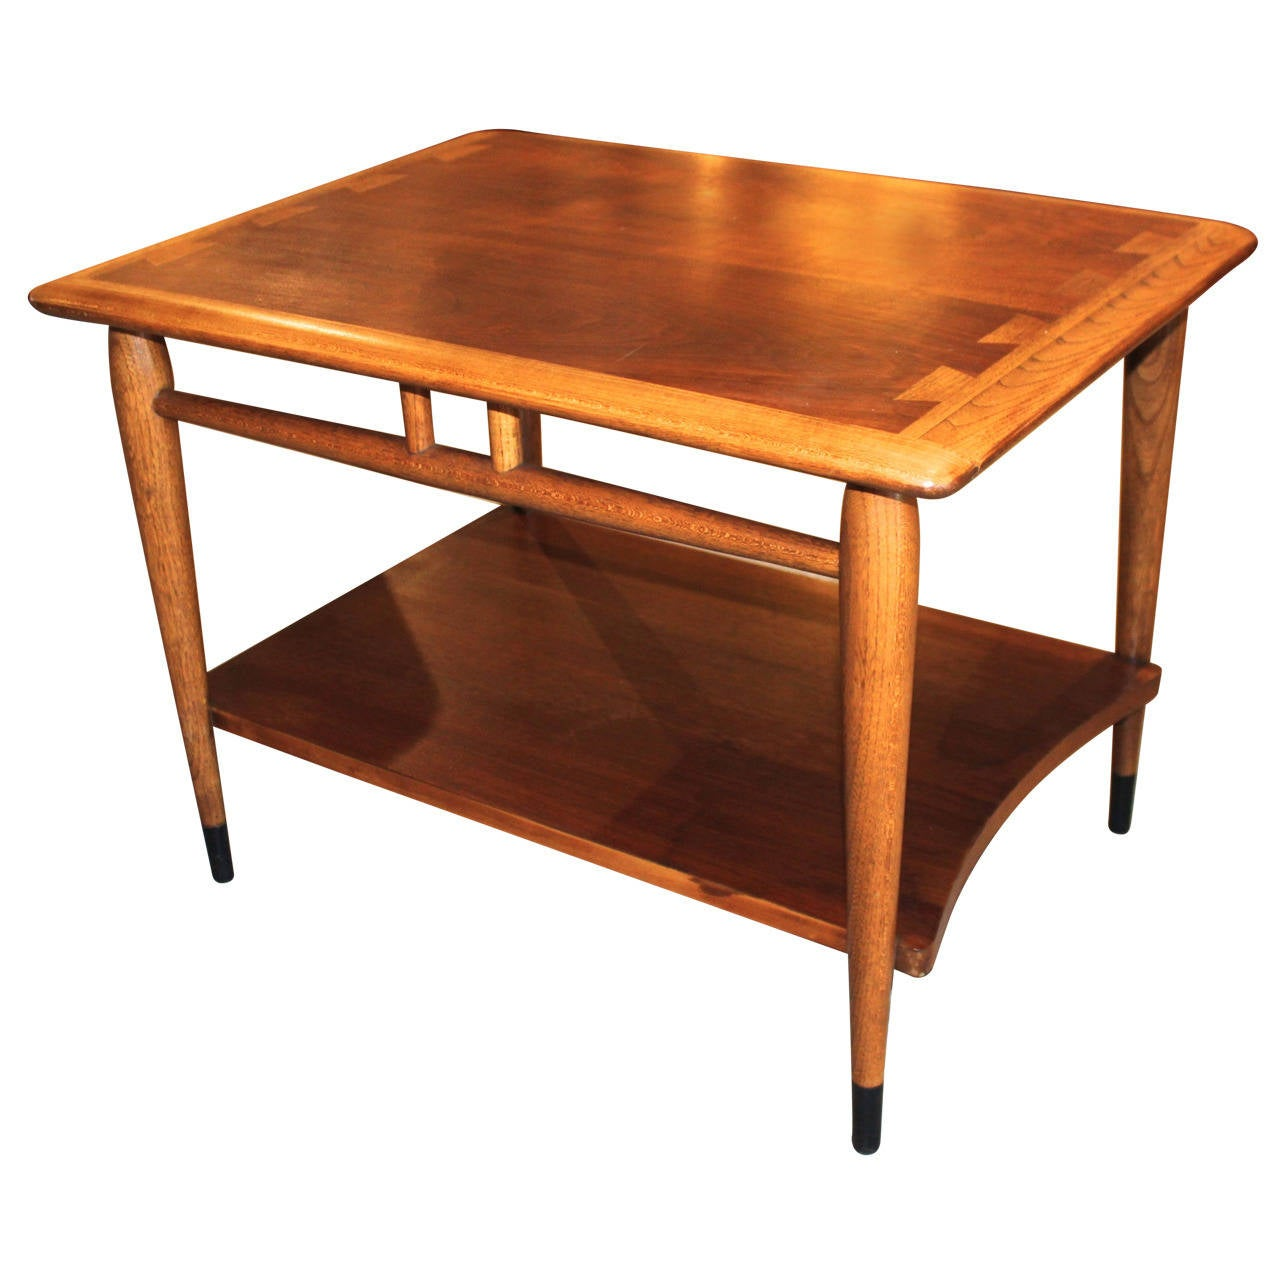 Lane Coffee Table With Drawers: Lane Dovetail End Tables At 1stdibs